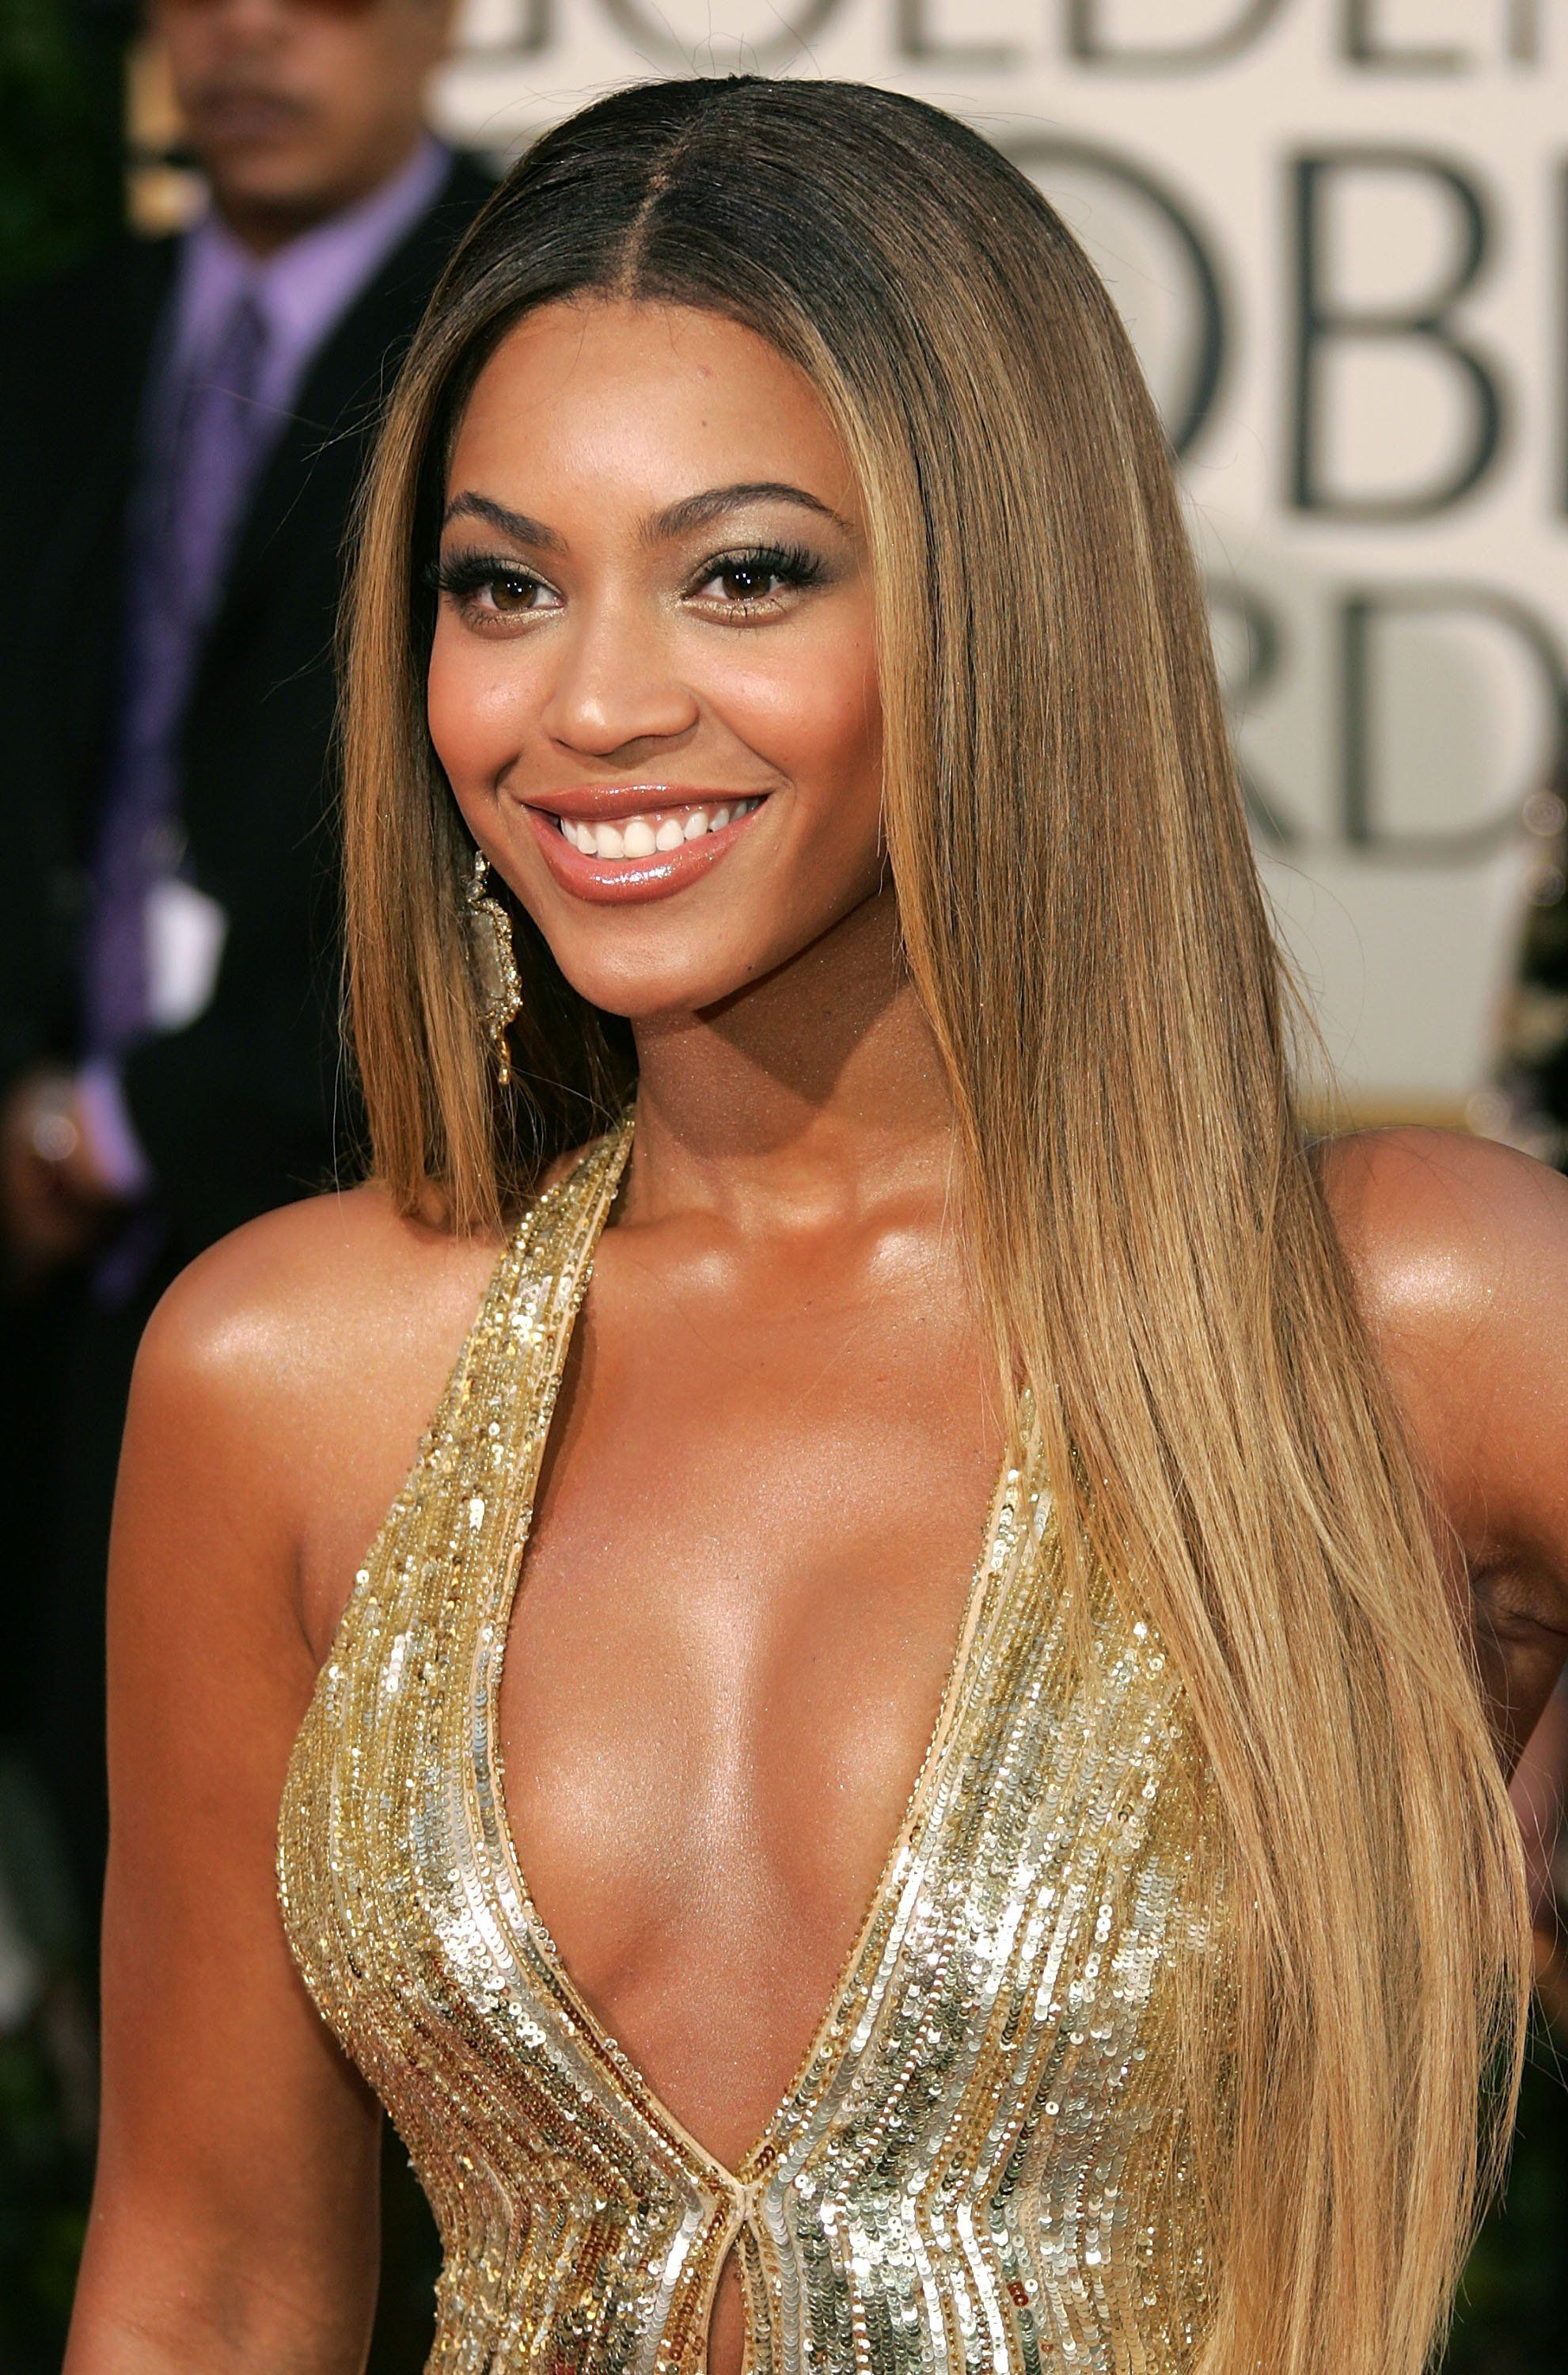 Beyonce S 7 Favorite Hair Looks Braids Blonde And More